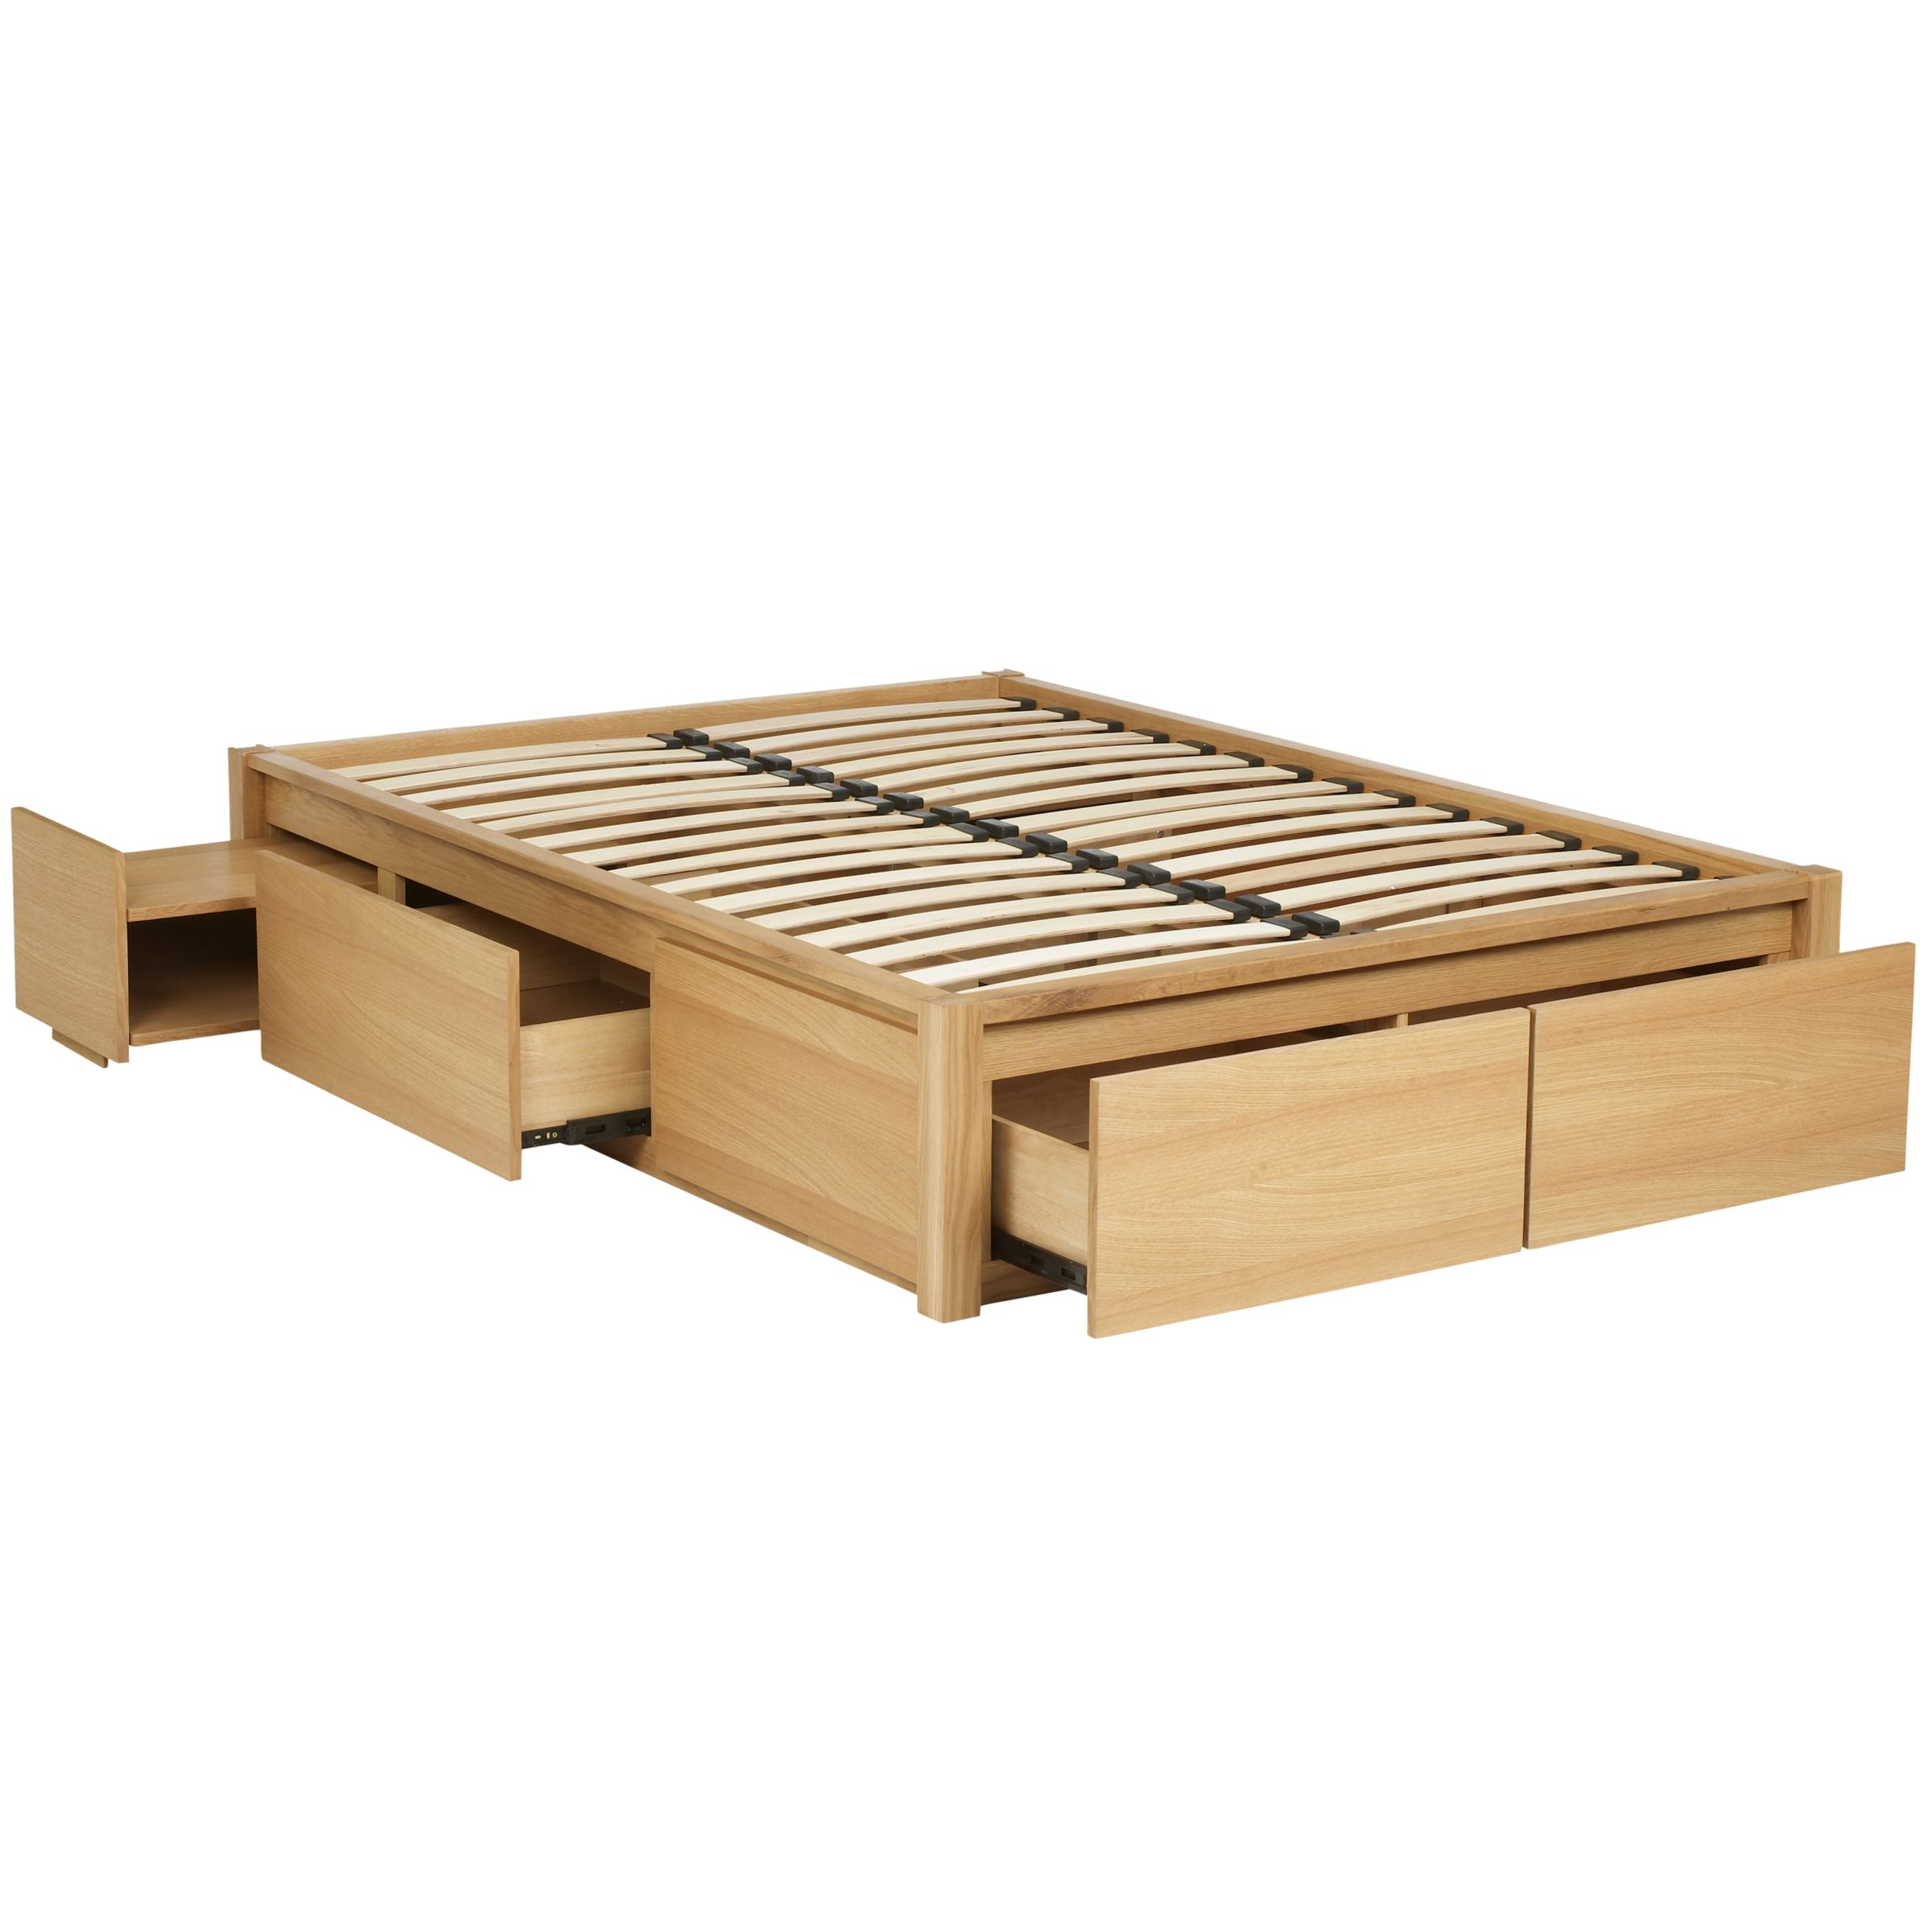 plans for platform bed with storage drawers | Woodworking Project ...